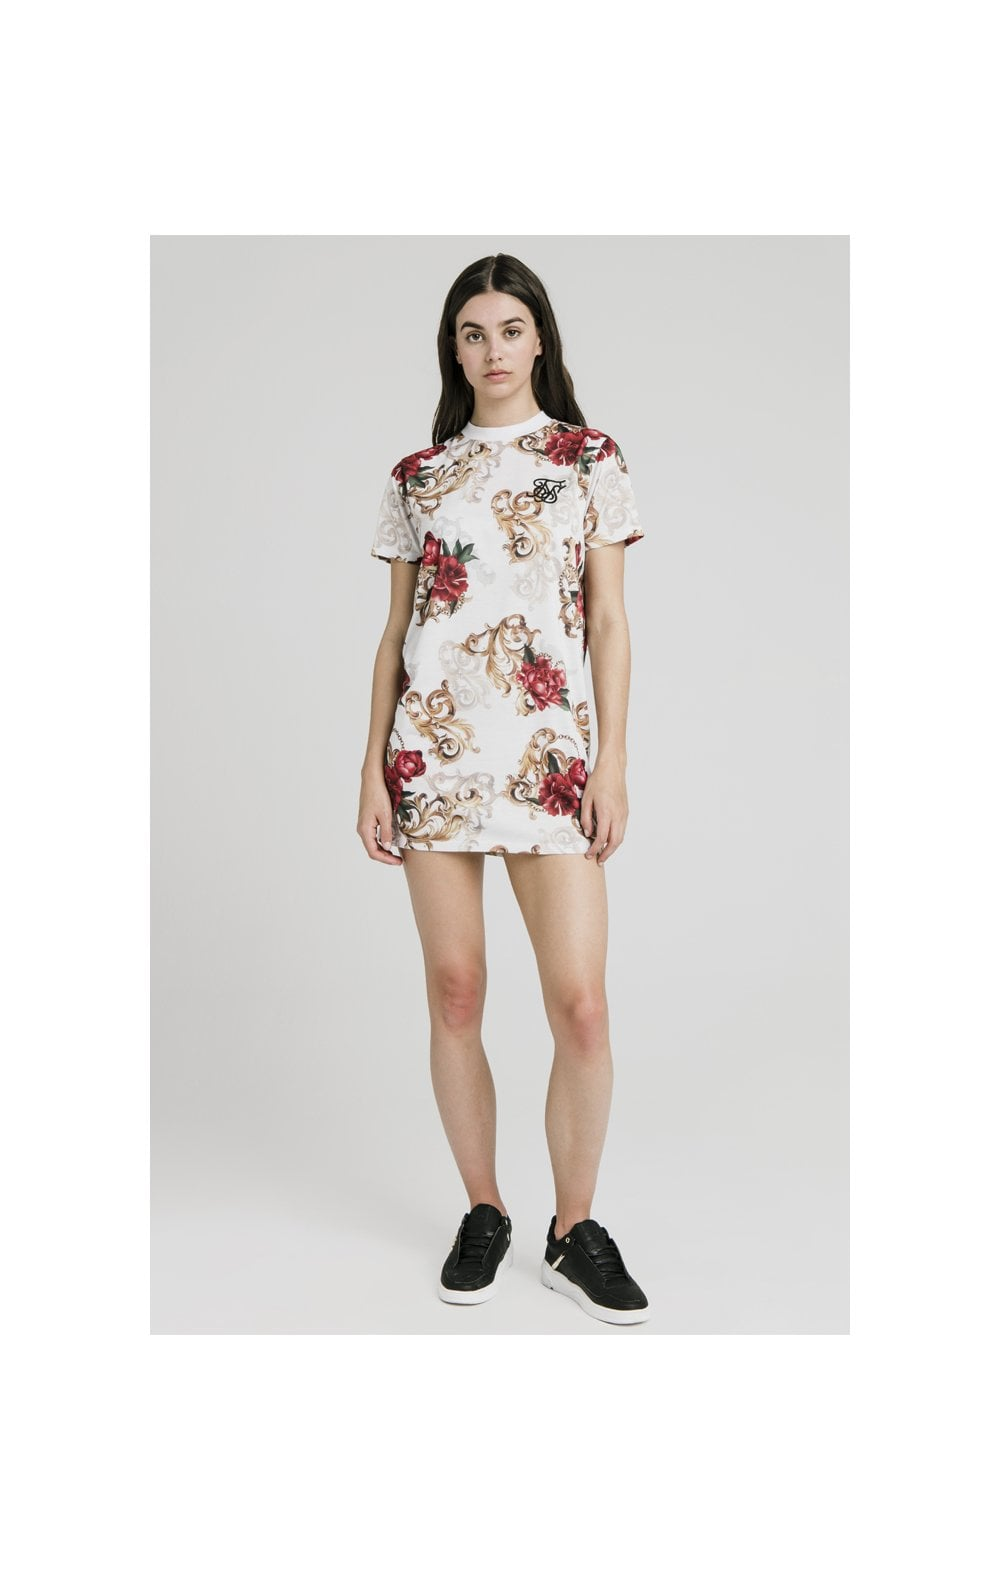 SikSilk T-Shirt Dress - White & Floral Elegance (5)